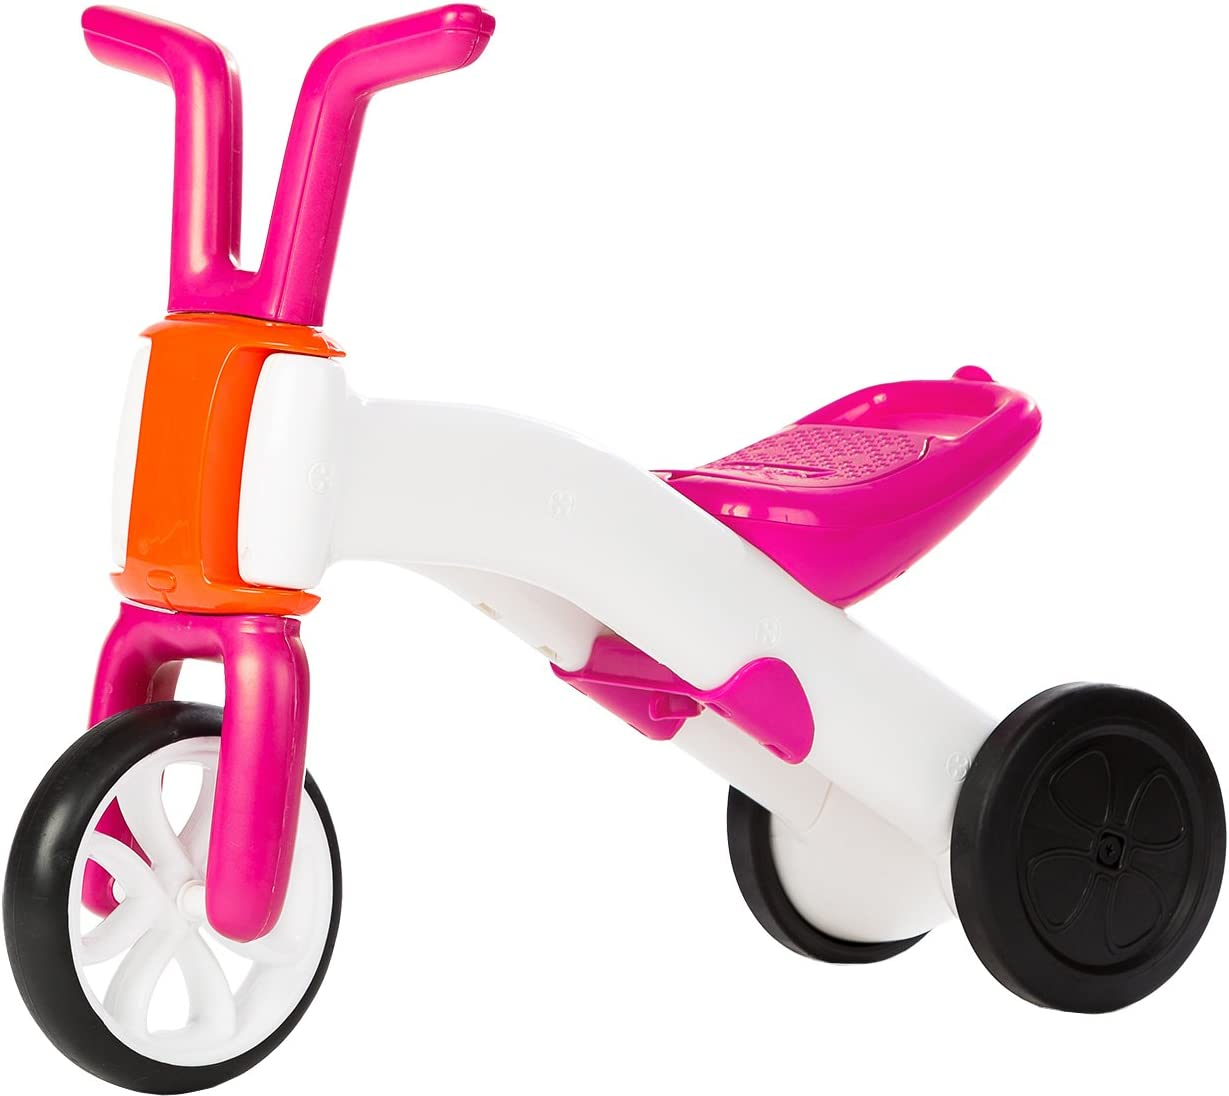 Chillafish - Bunzi Balance Ride-on, correpasillos y Bicicleta 2 en 1, Color Rosa (49901P)